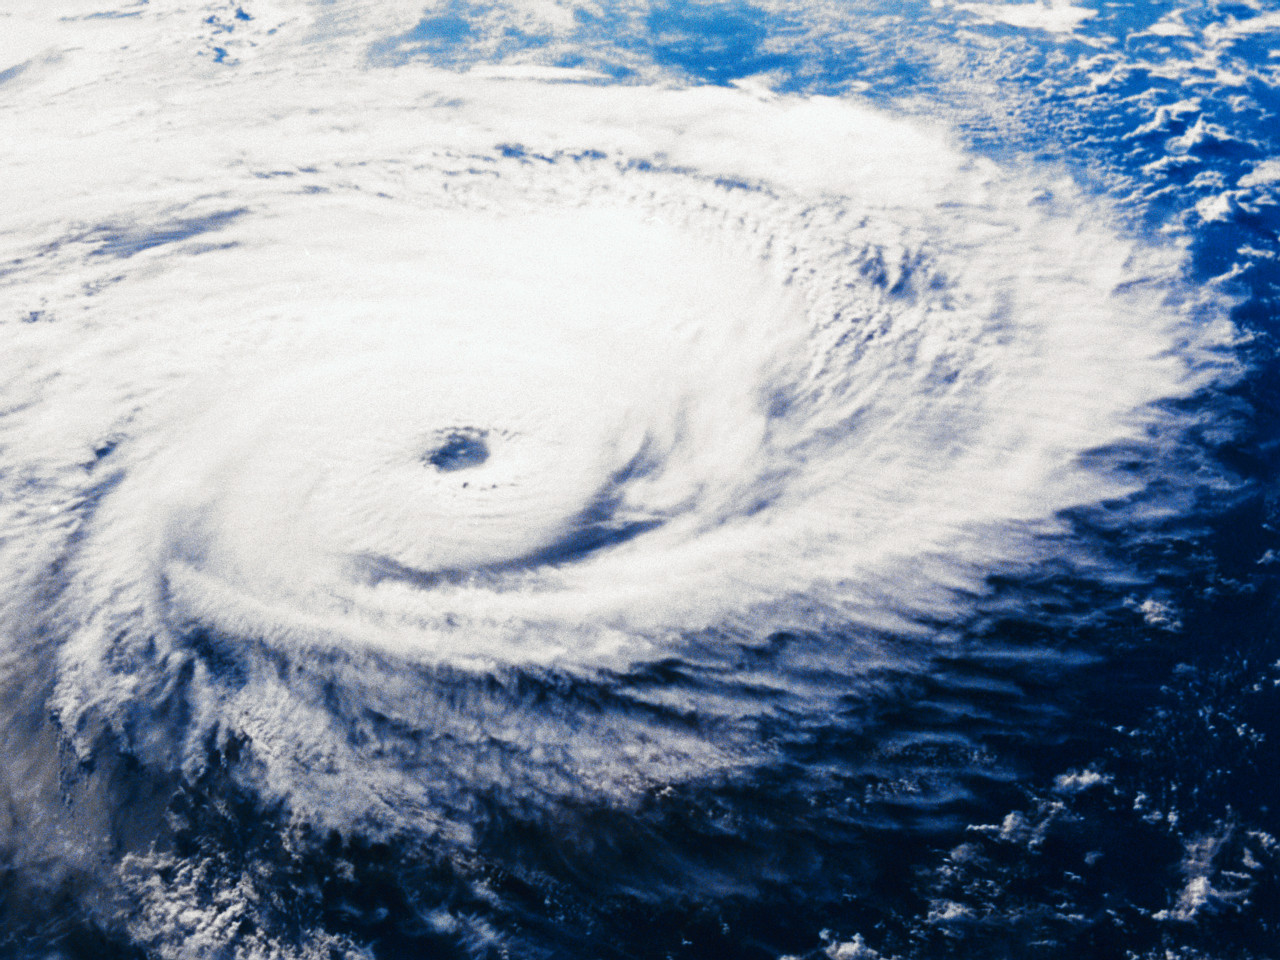 Prepare Now for the Next Hurricane to Prevent Disaster